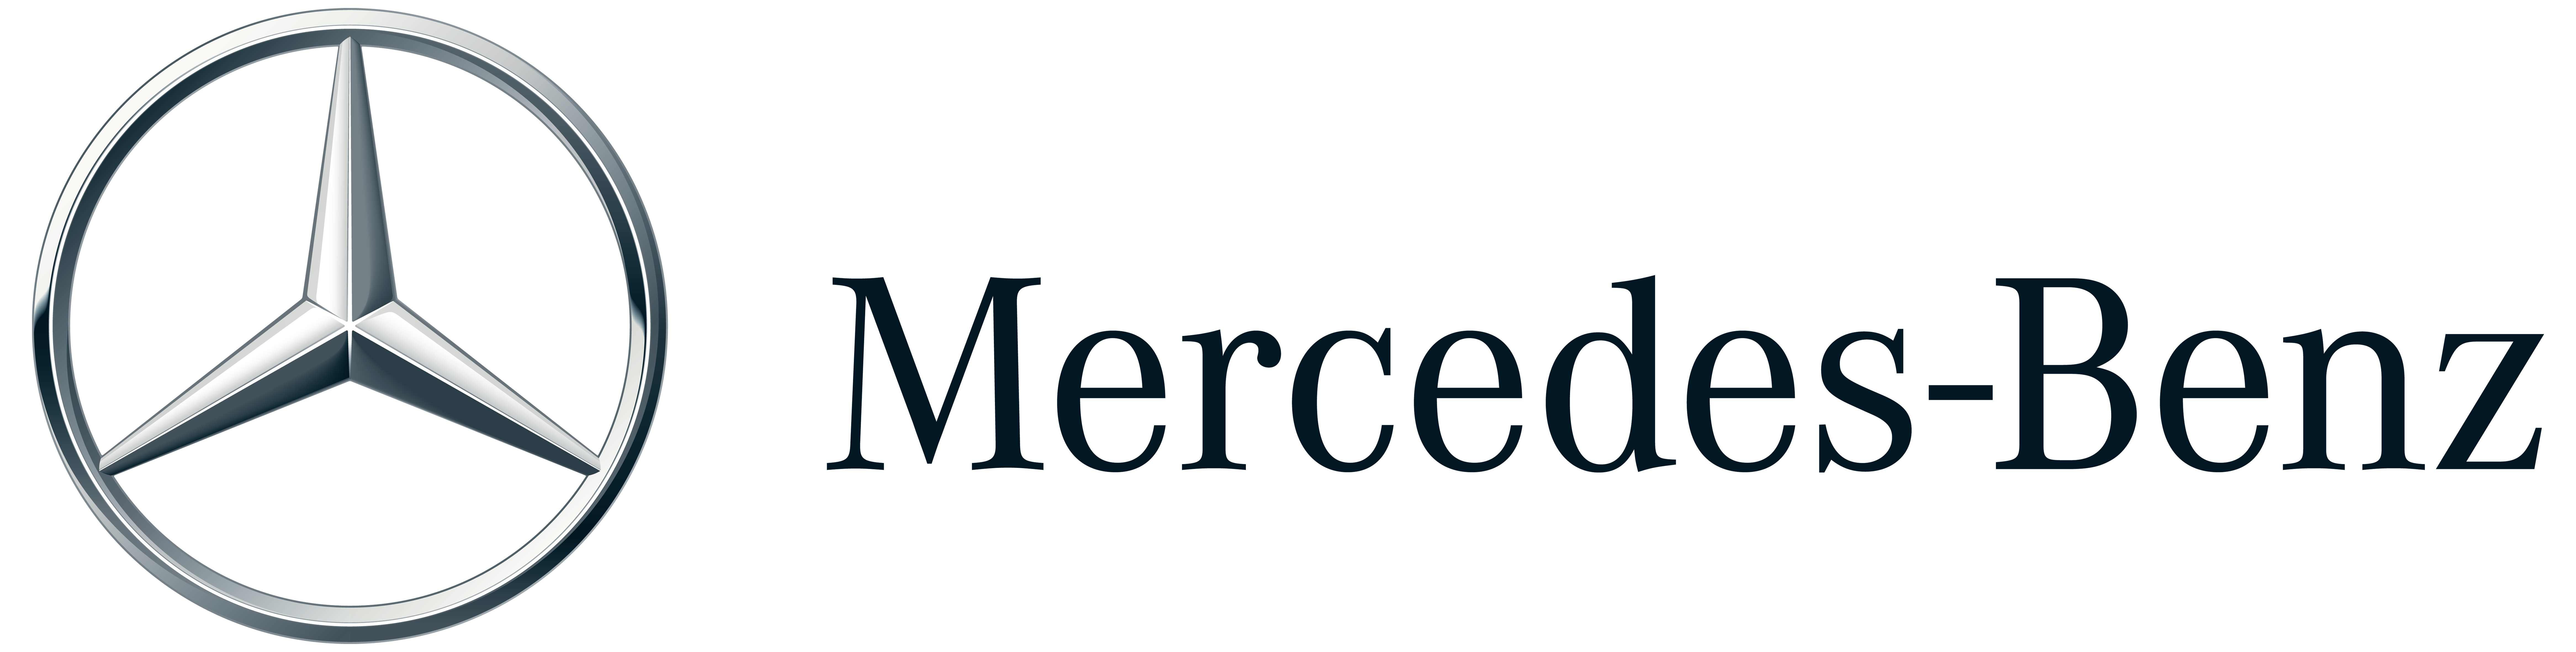 mercedes singles Mercedes boy (single remix version) lyrics: mercedes, mercedes / do you wanna ride / baby, let me tell you / i've been watching you / see you dancing in my dreams / feel your heartbeat.